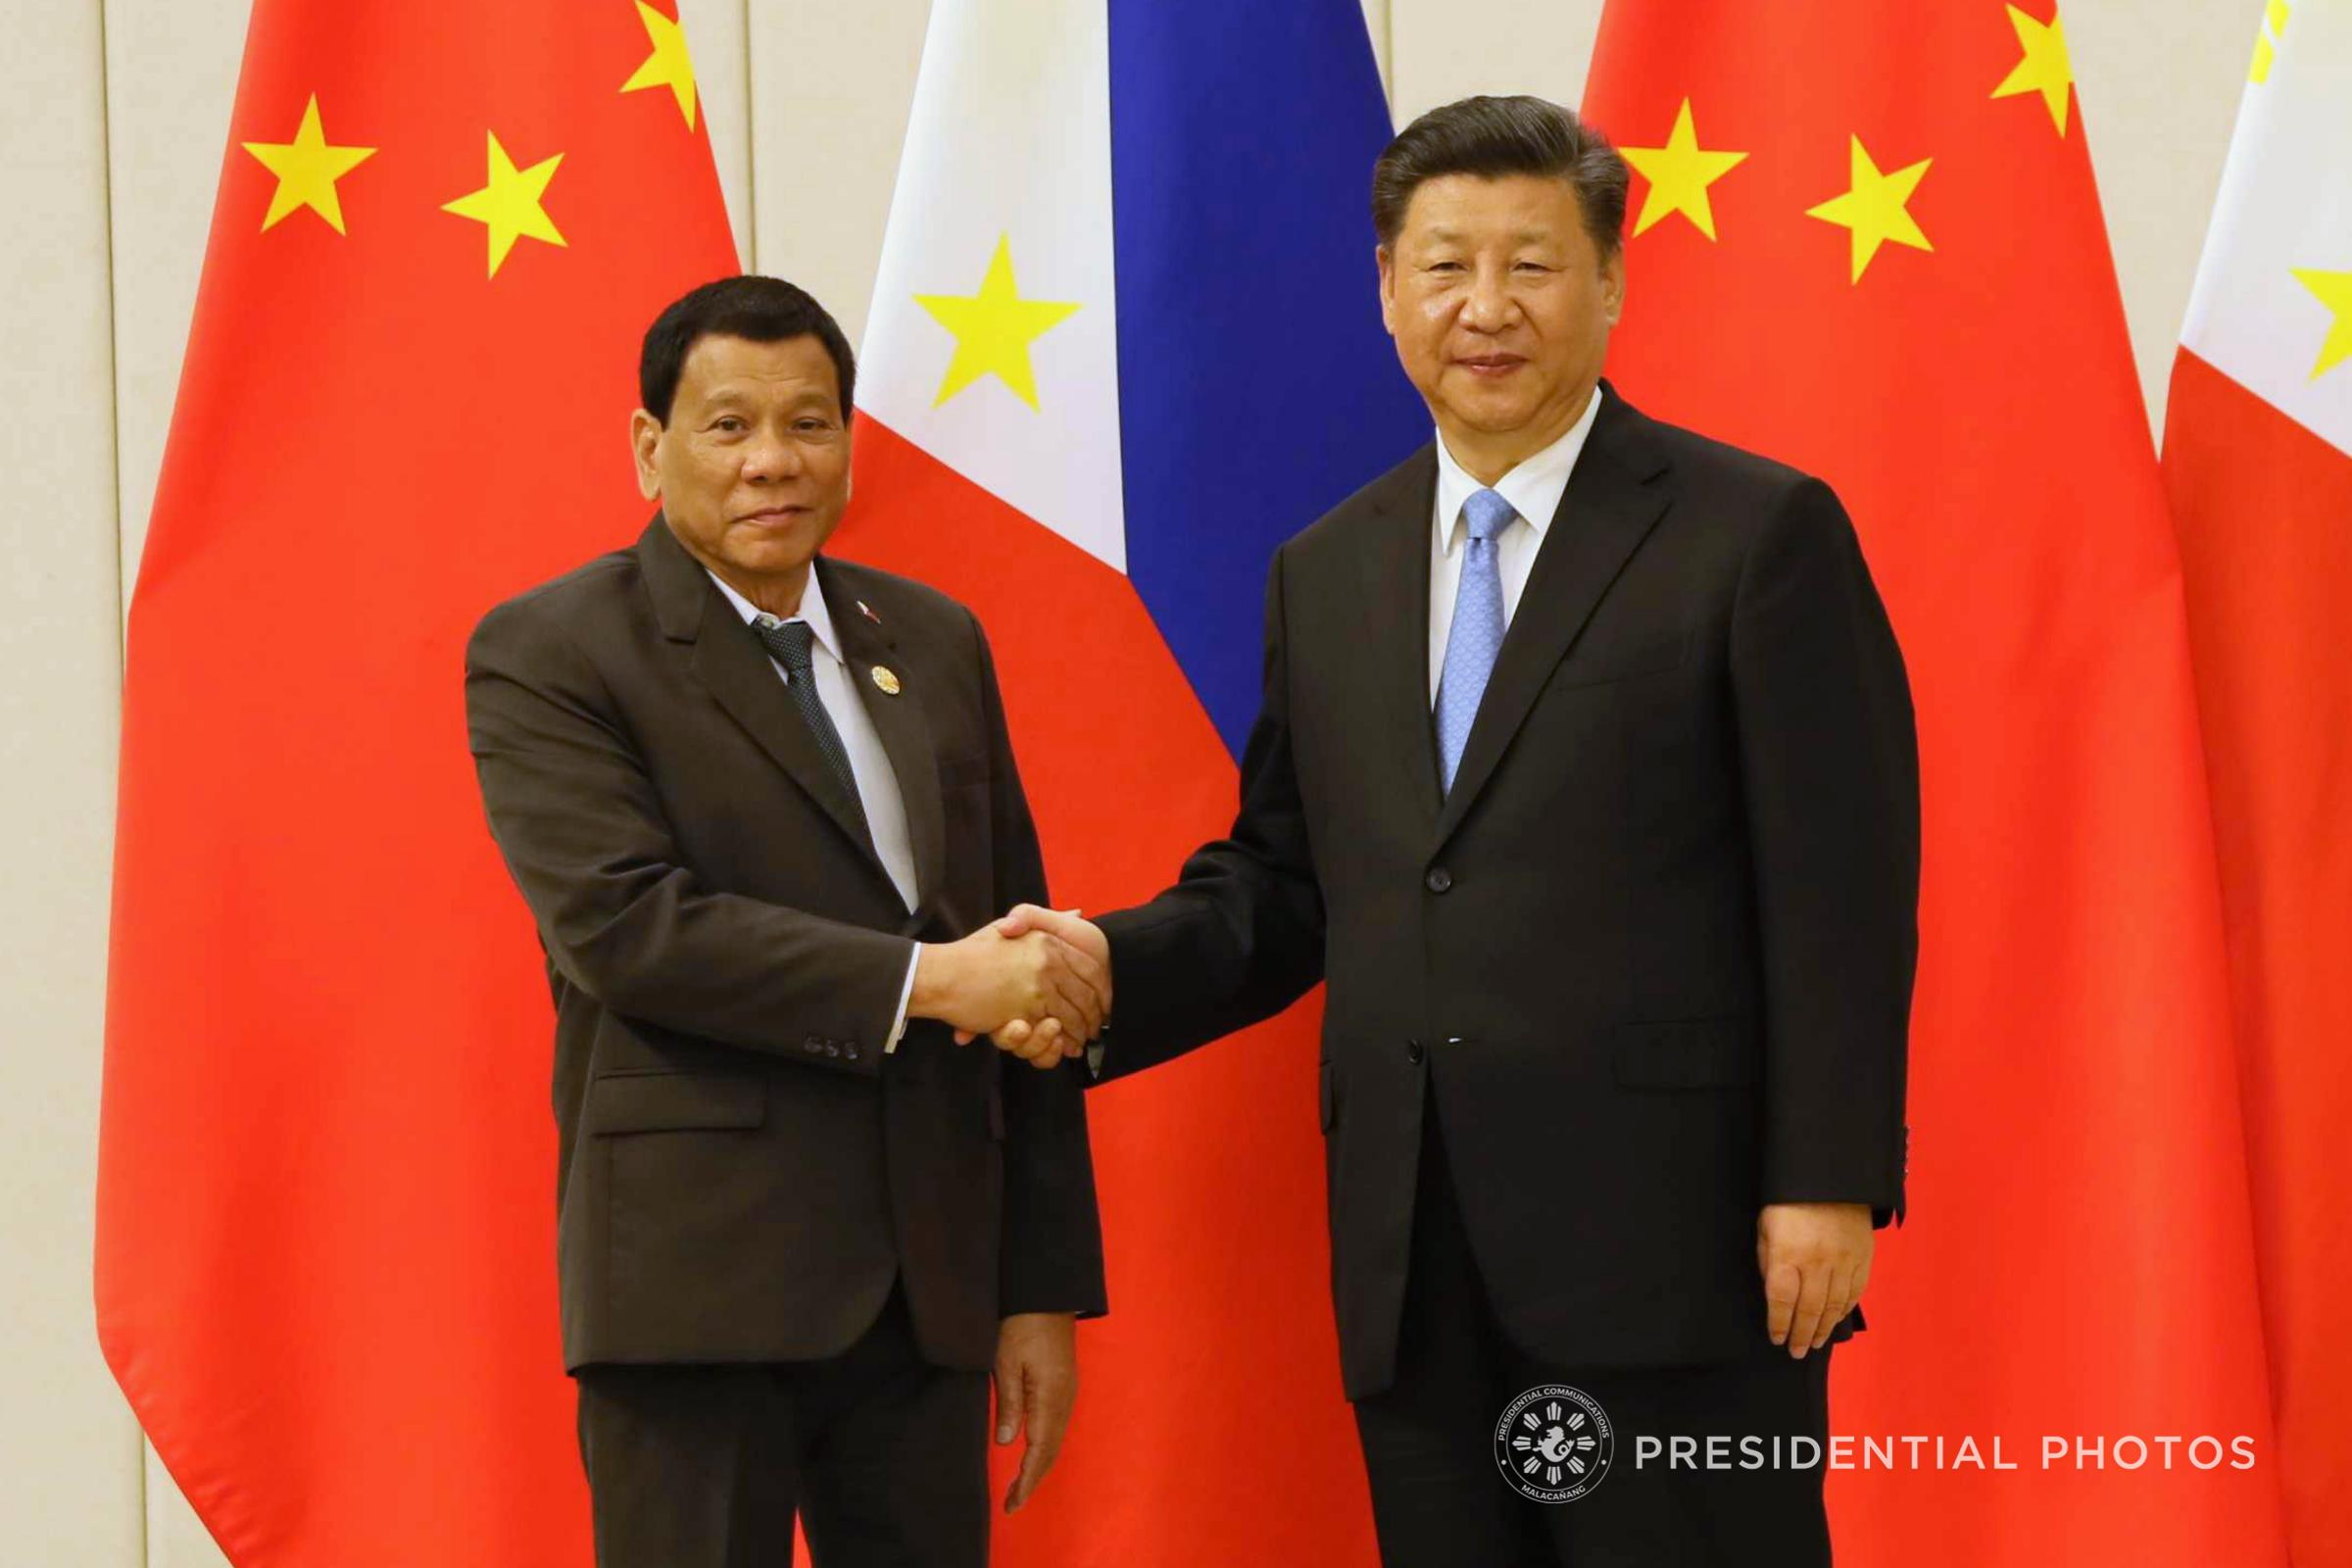 China's Xi Jinping will be in PH this November